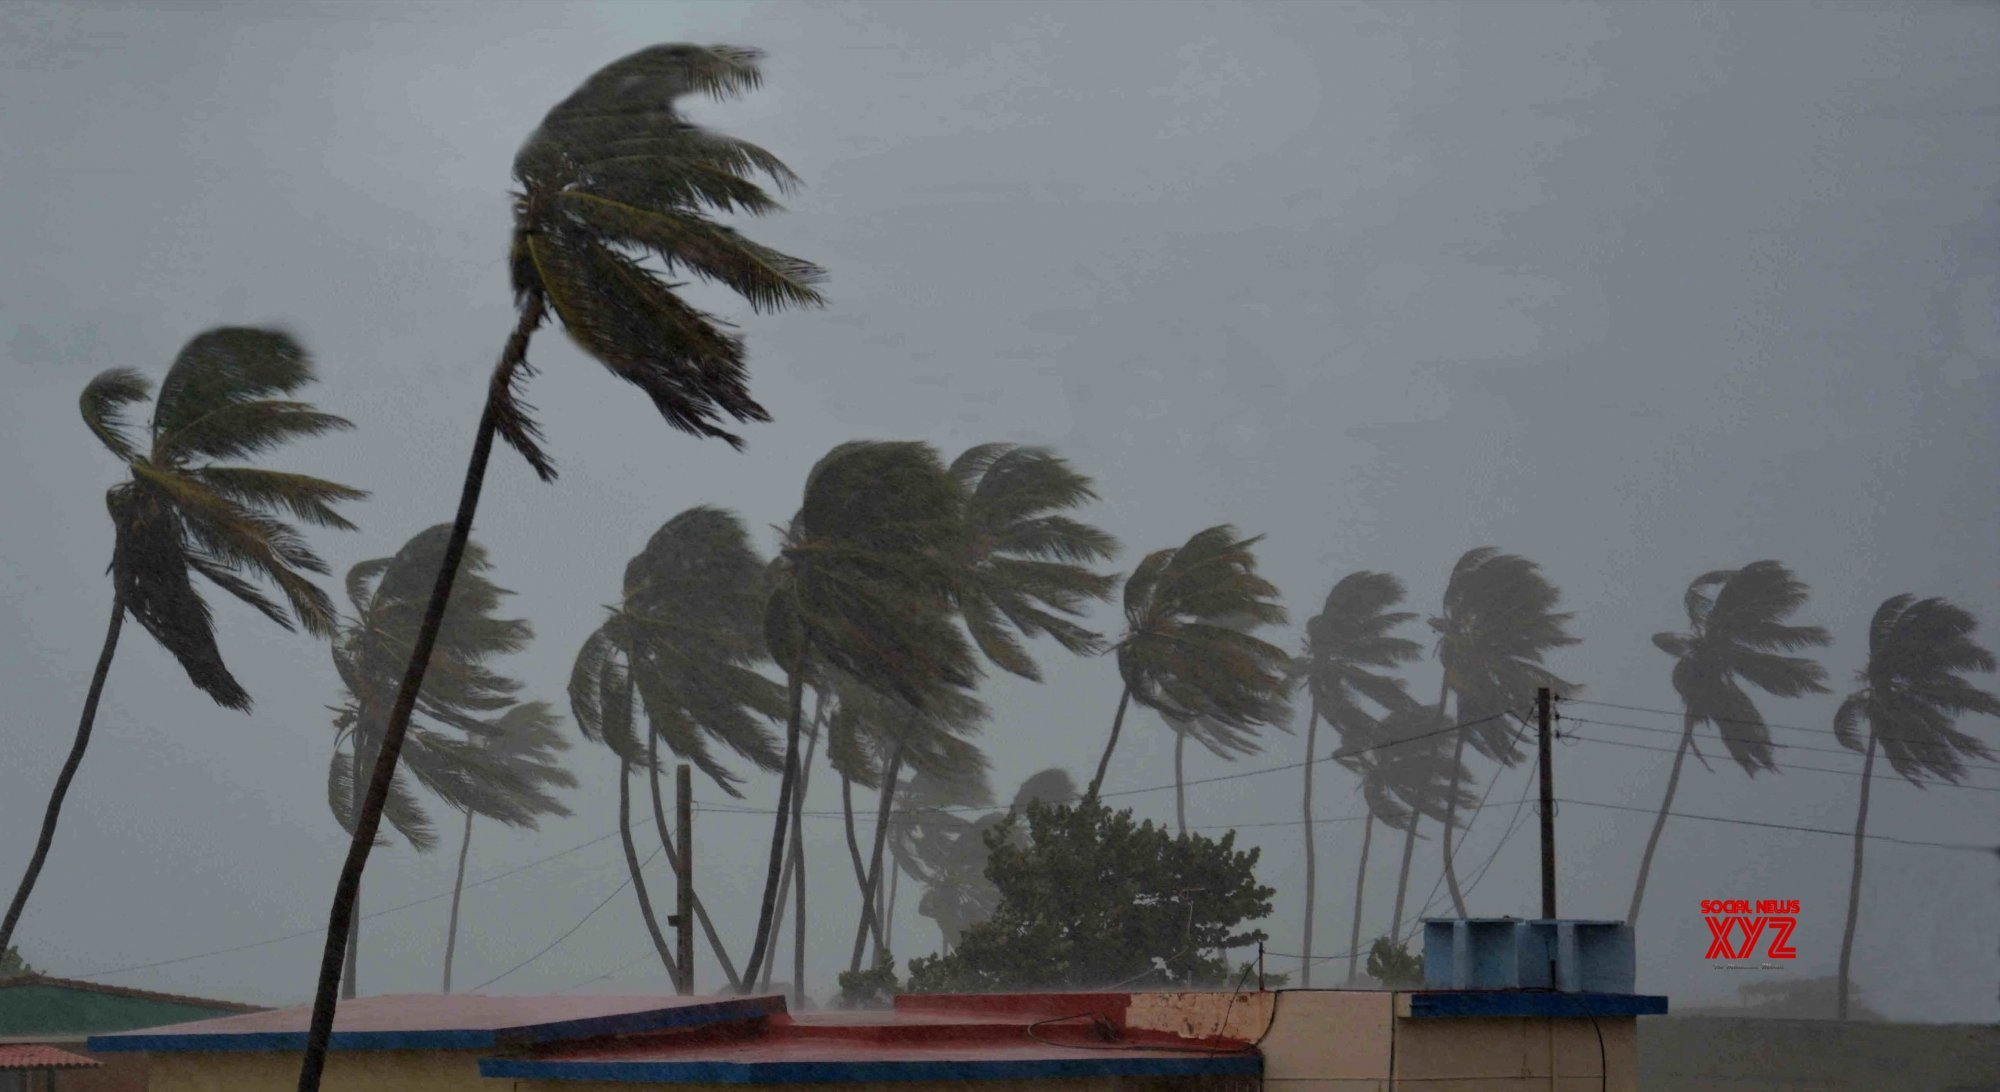 24 killed, 31 missing as storm strikes fishing ships in Indonesia